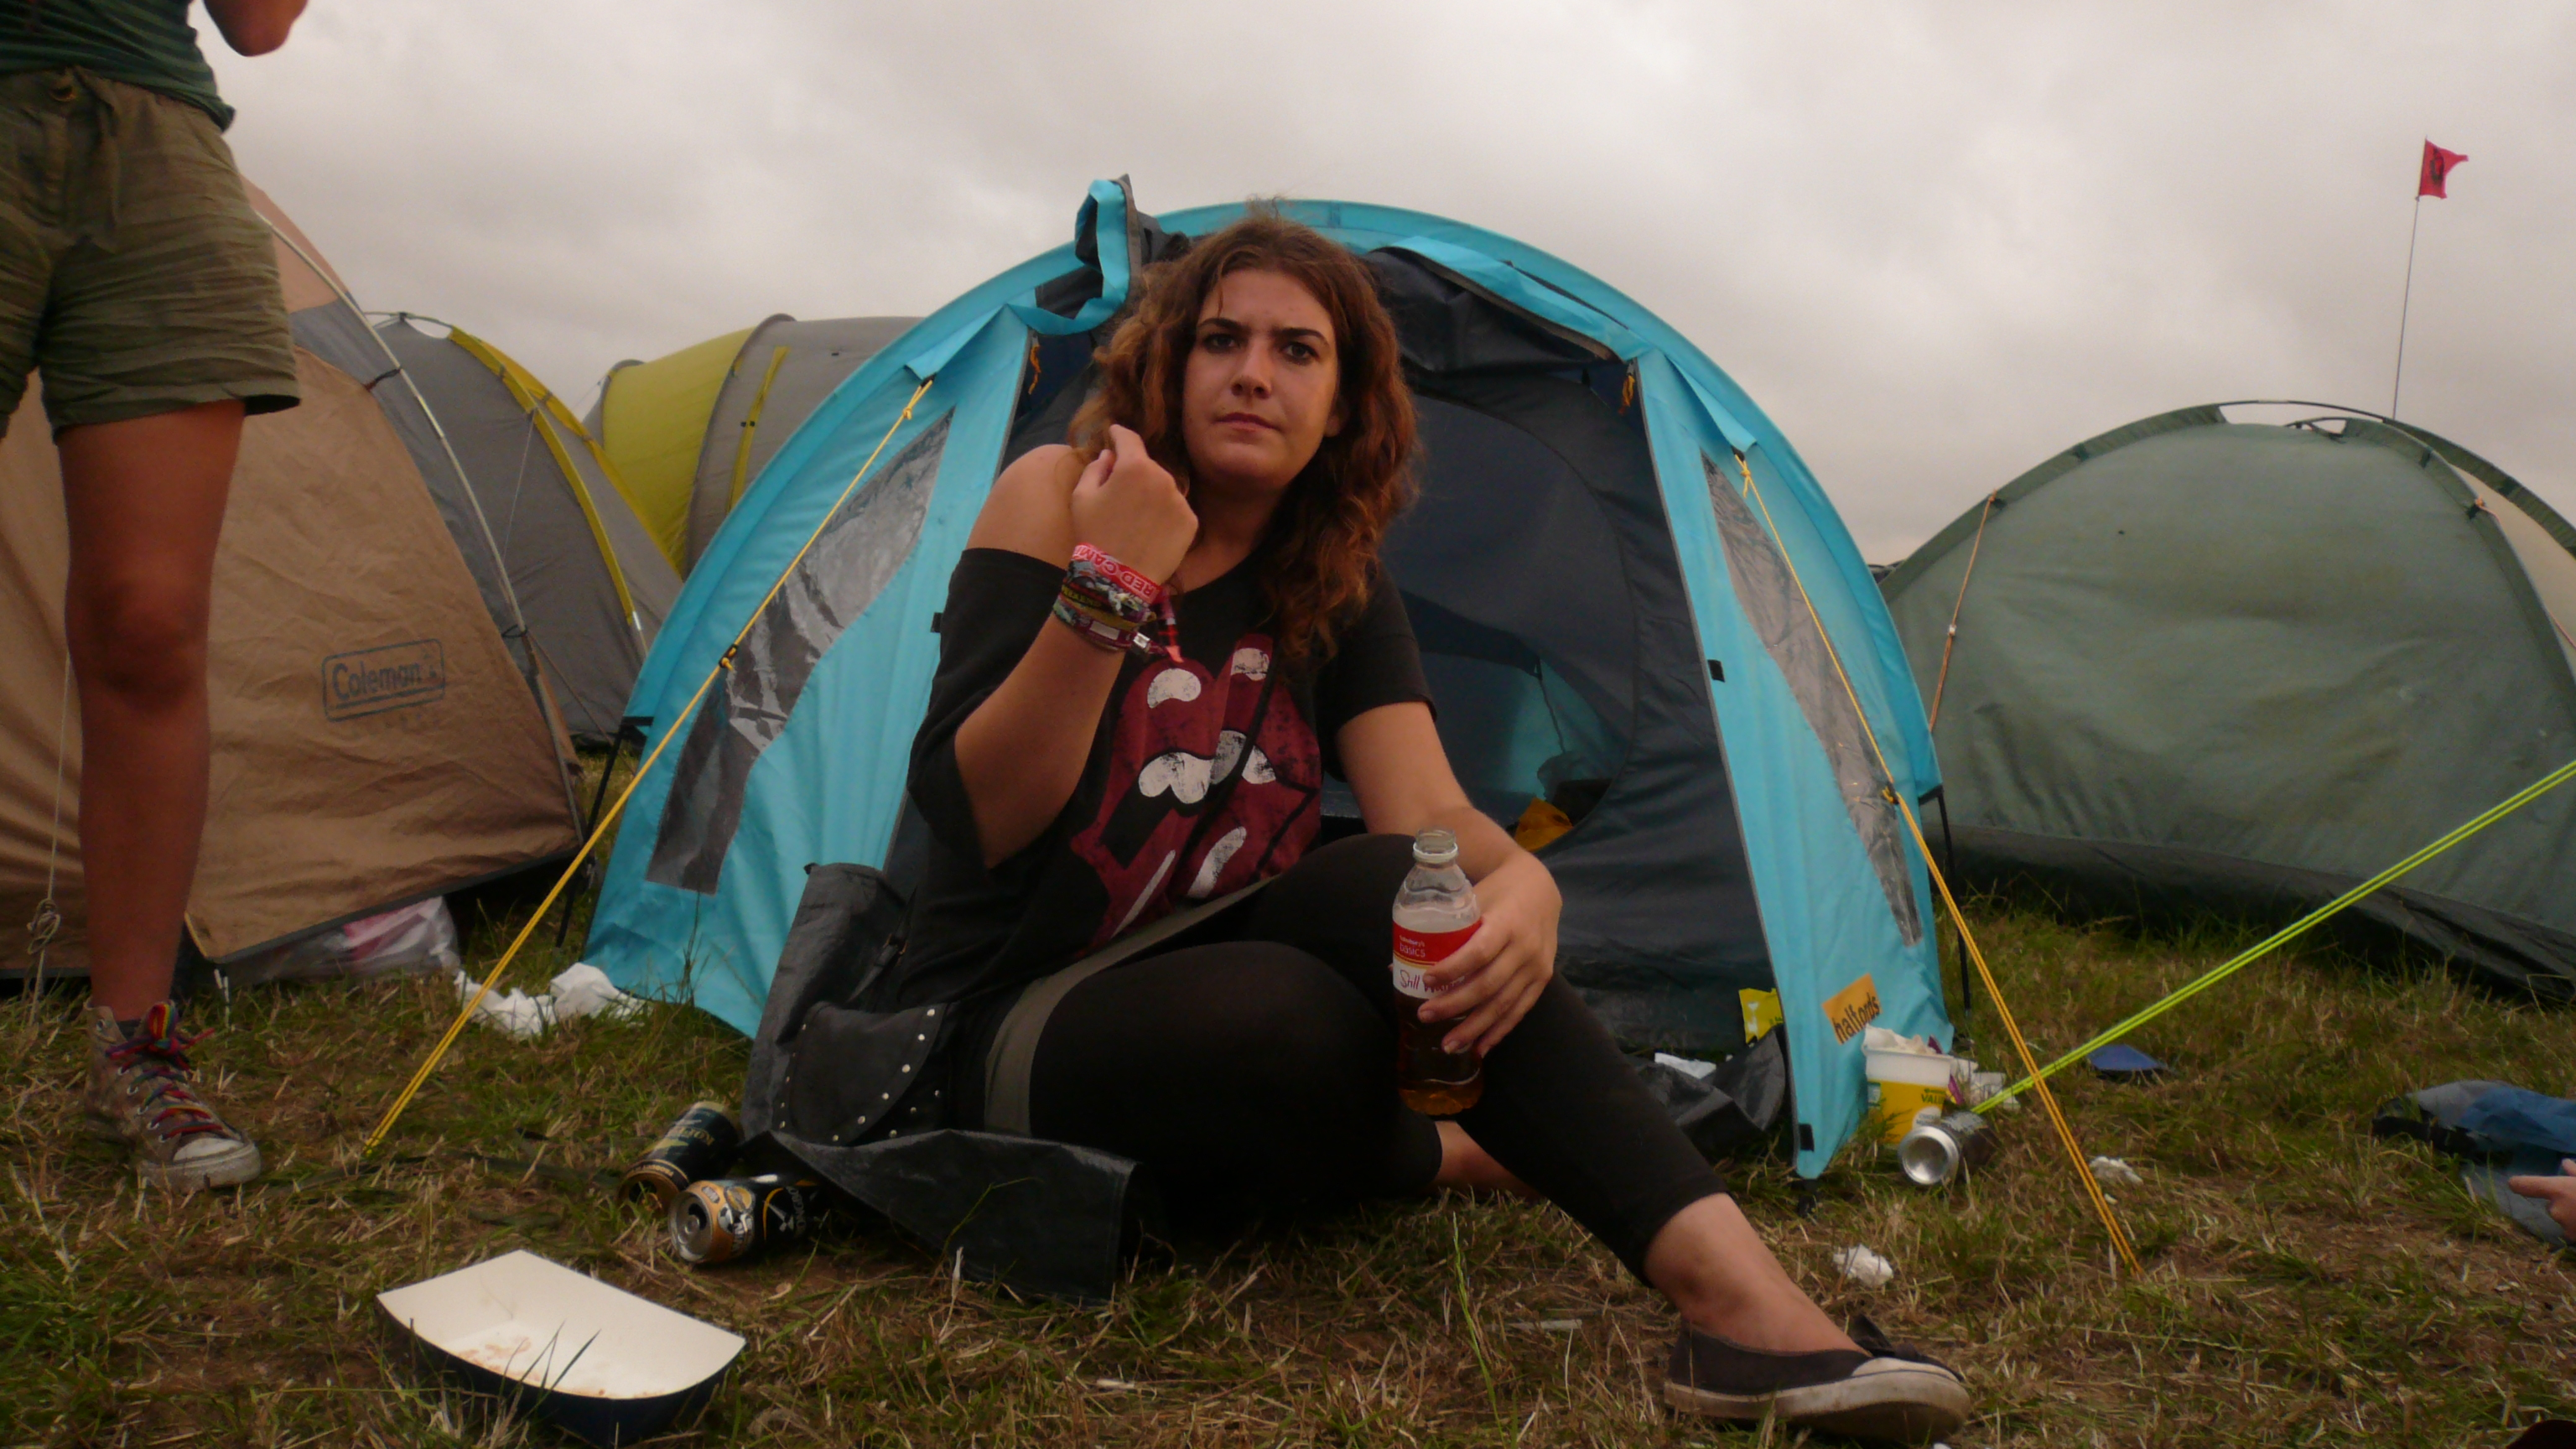 Peeing women at festivals